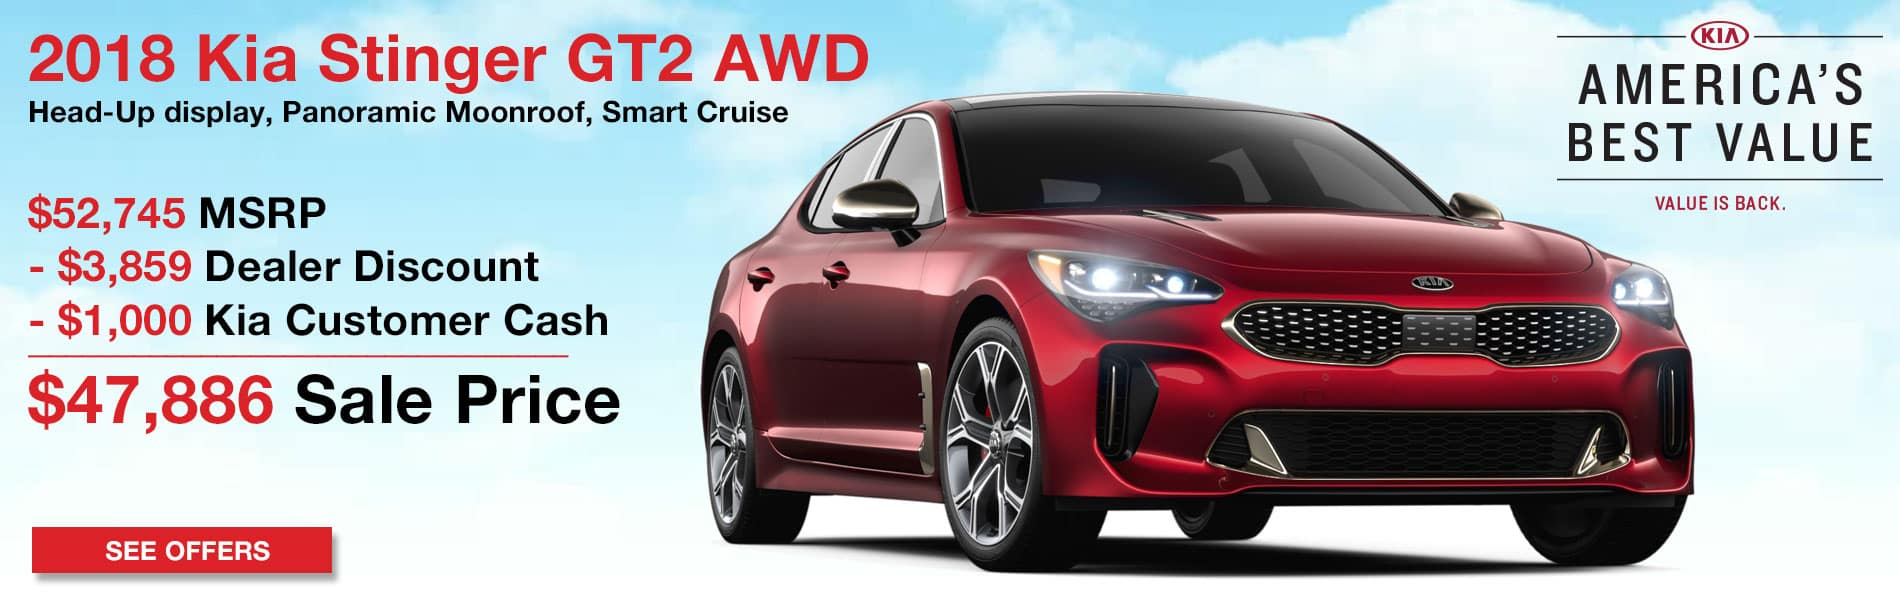 Up to $3,859 in dealer discount and $1,000 in Kia Customer Cash on the New 2018 Kia Stinger GT2 AWD